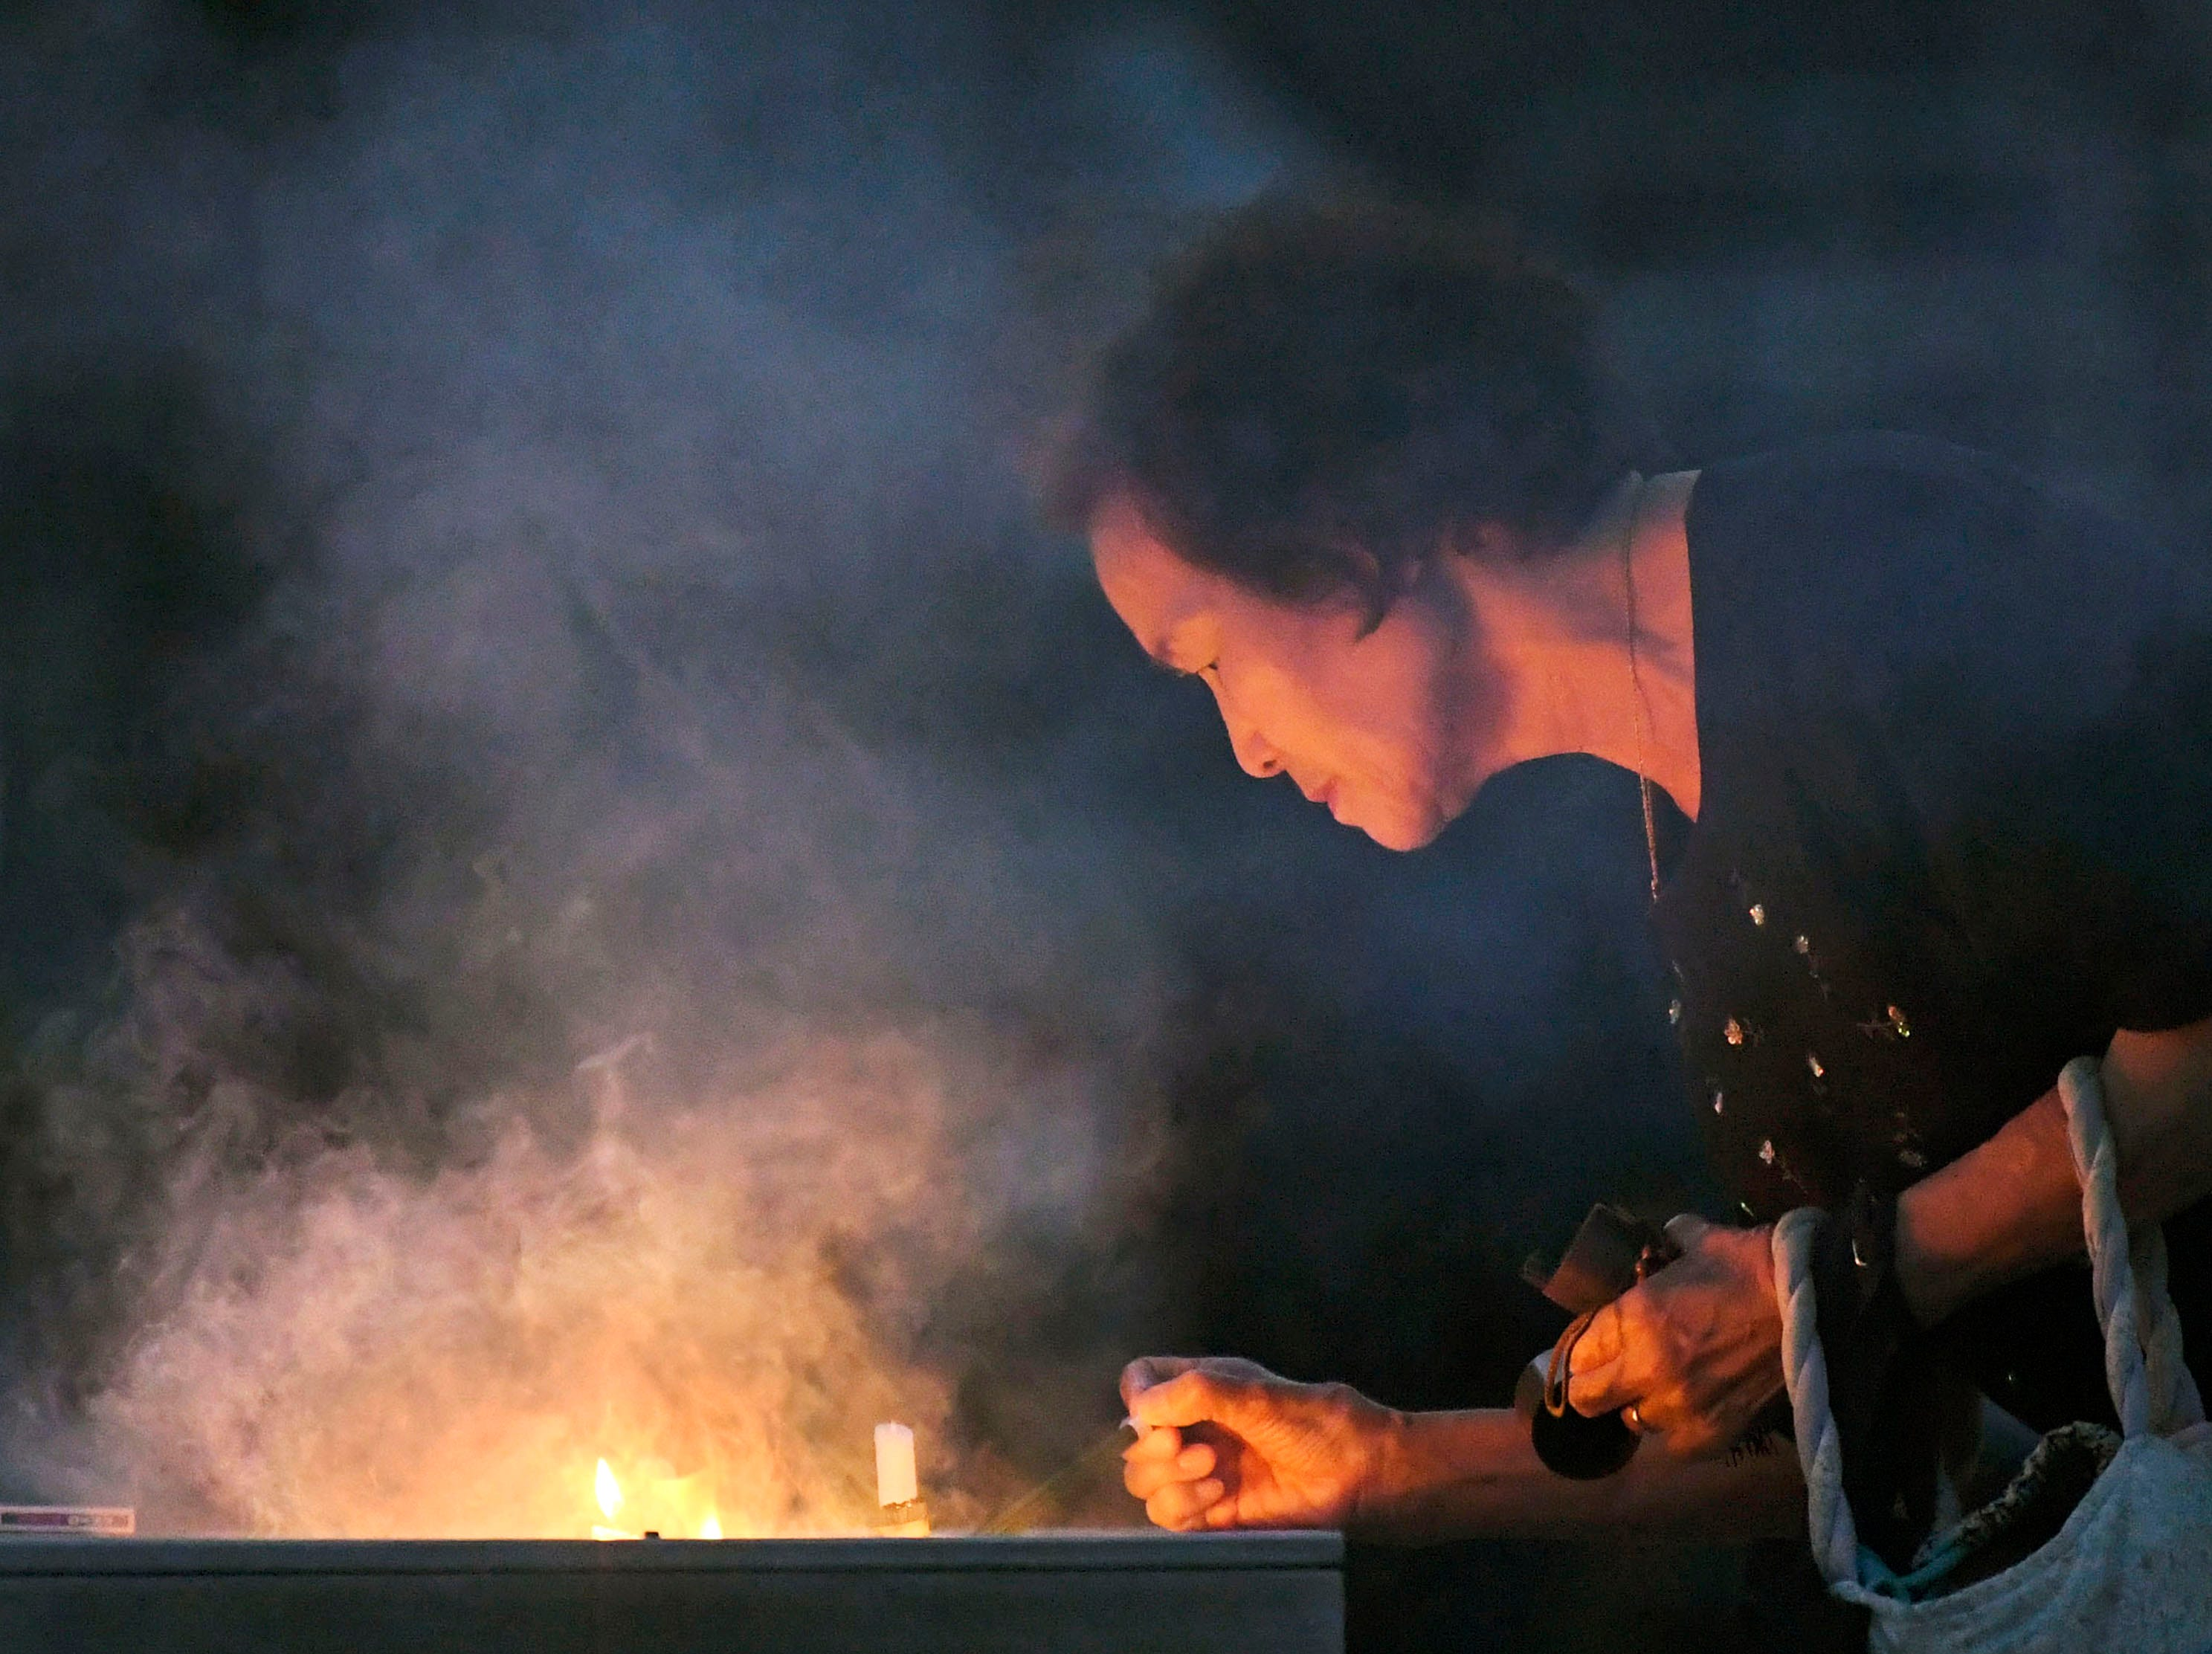 A woman burns a stick of incense at the cenotaph dedicated to the victims of atomic bombing at Hiroshima Peace Memorial Park in Hiroshima, western Japan, Monday, Aug. 6, 2018, marking the 73rd anniversary of the bombing.